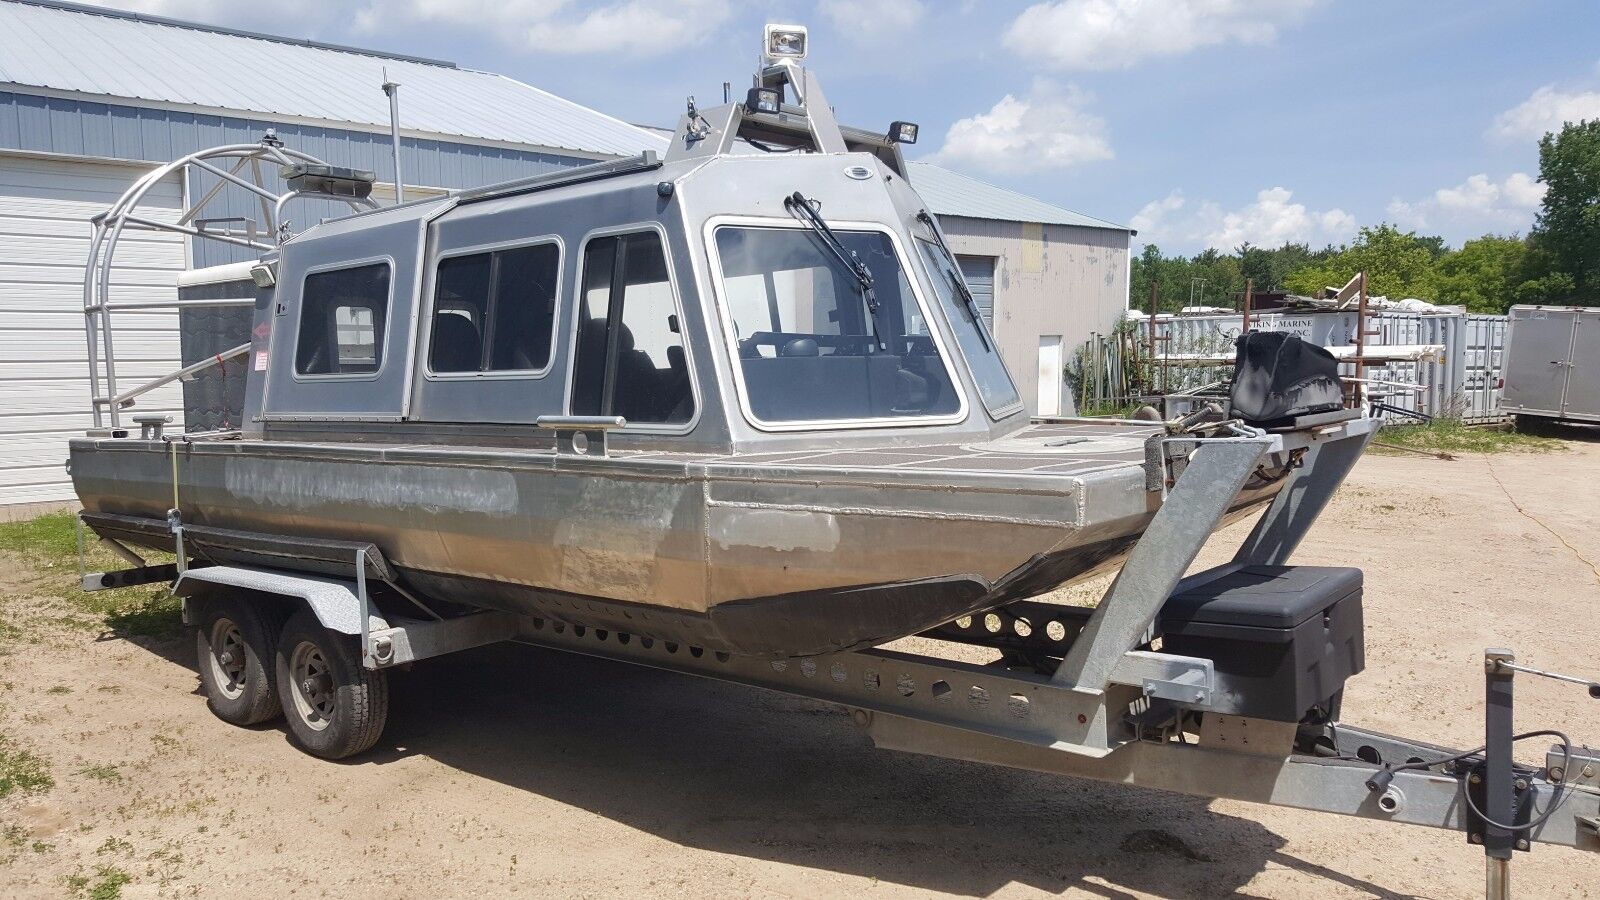 Airboat (former Uscg Ice Rescue Airboat) Tiltbed Galvanized Trailer - Used Midwest Rescue ...